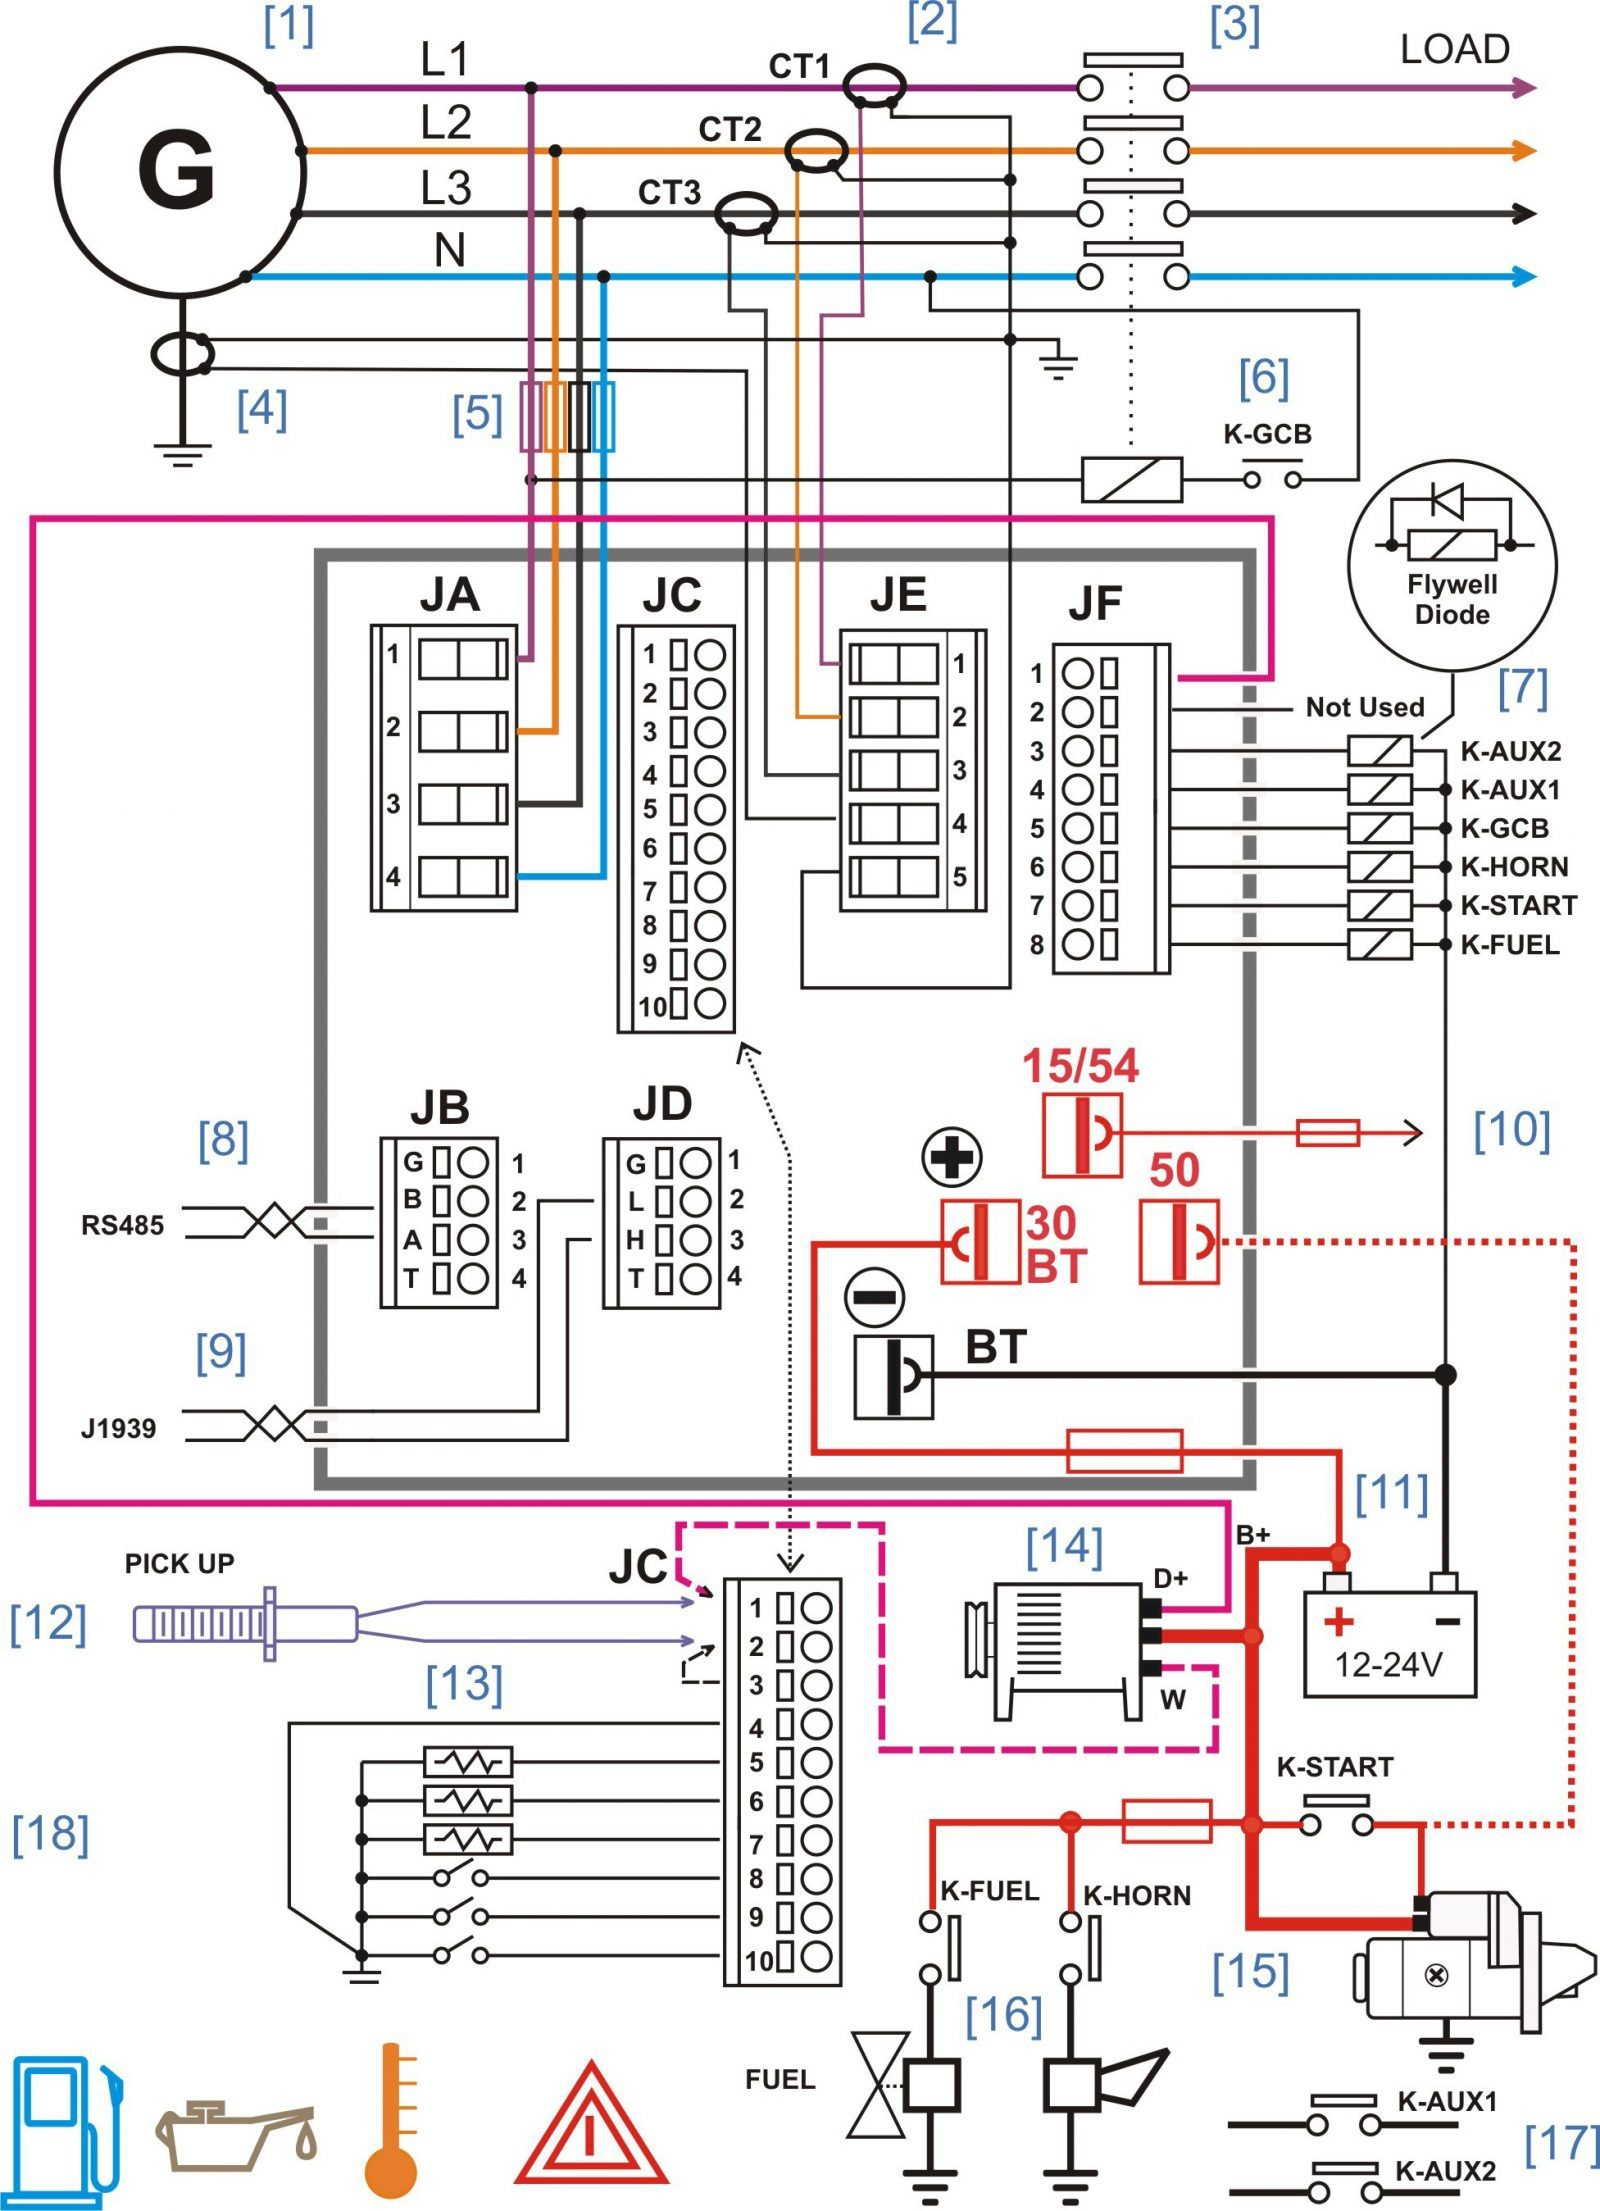 Wiring Diagrams for Car Audio Lovely Car Stereo Wiring Diagram Diagram Of Wiring Diagrams for Car Audio Car with Detaleted Wiring and Factory Stereo Diagrams Wiring Diagram